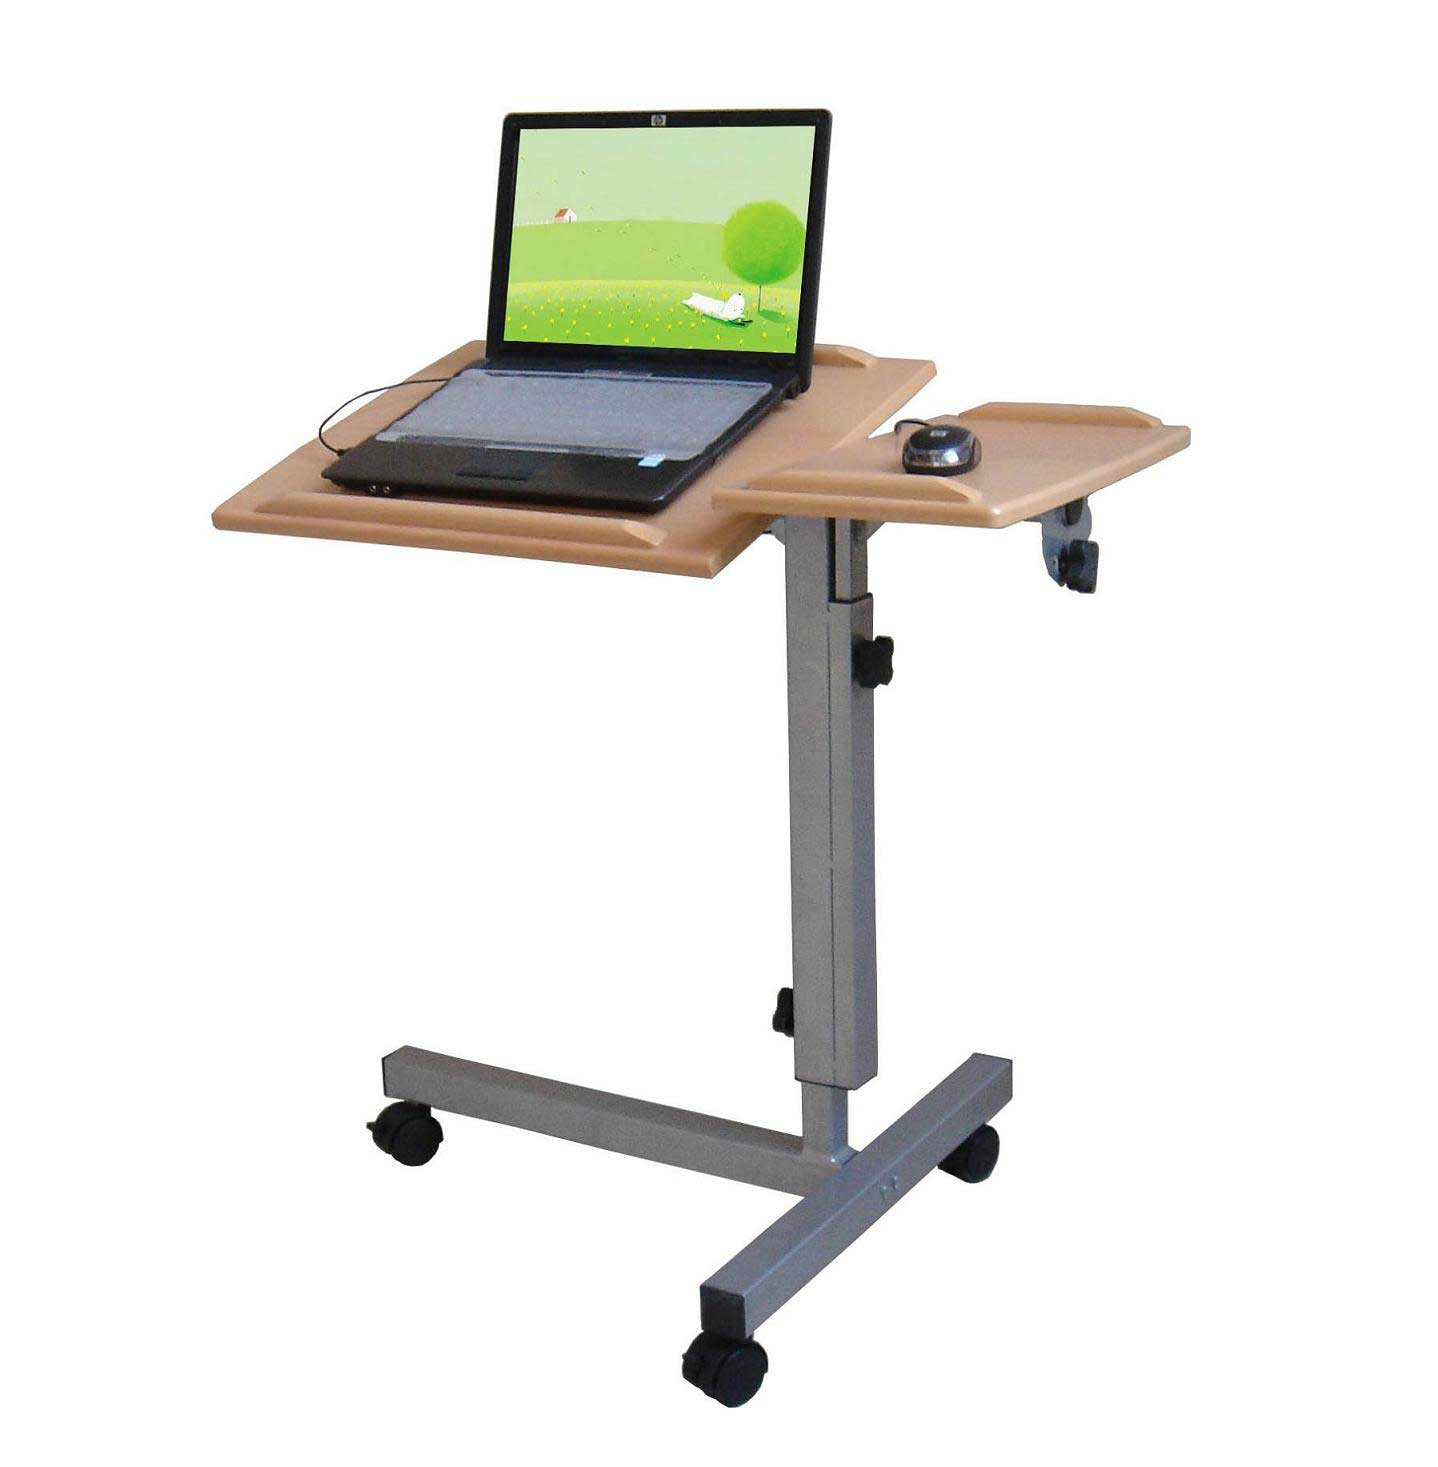 functional metal lifting table for laptop